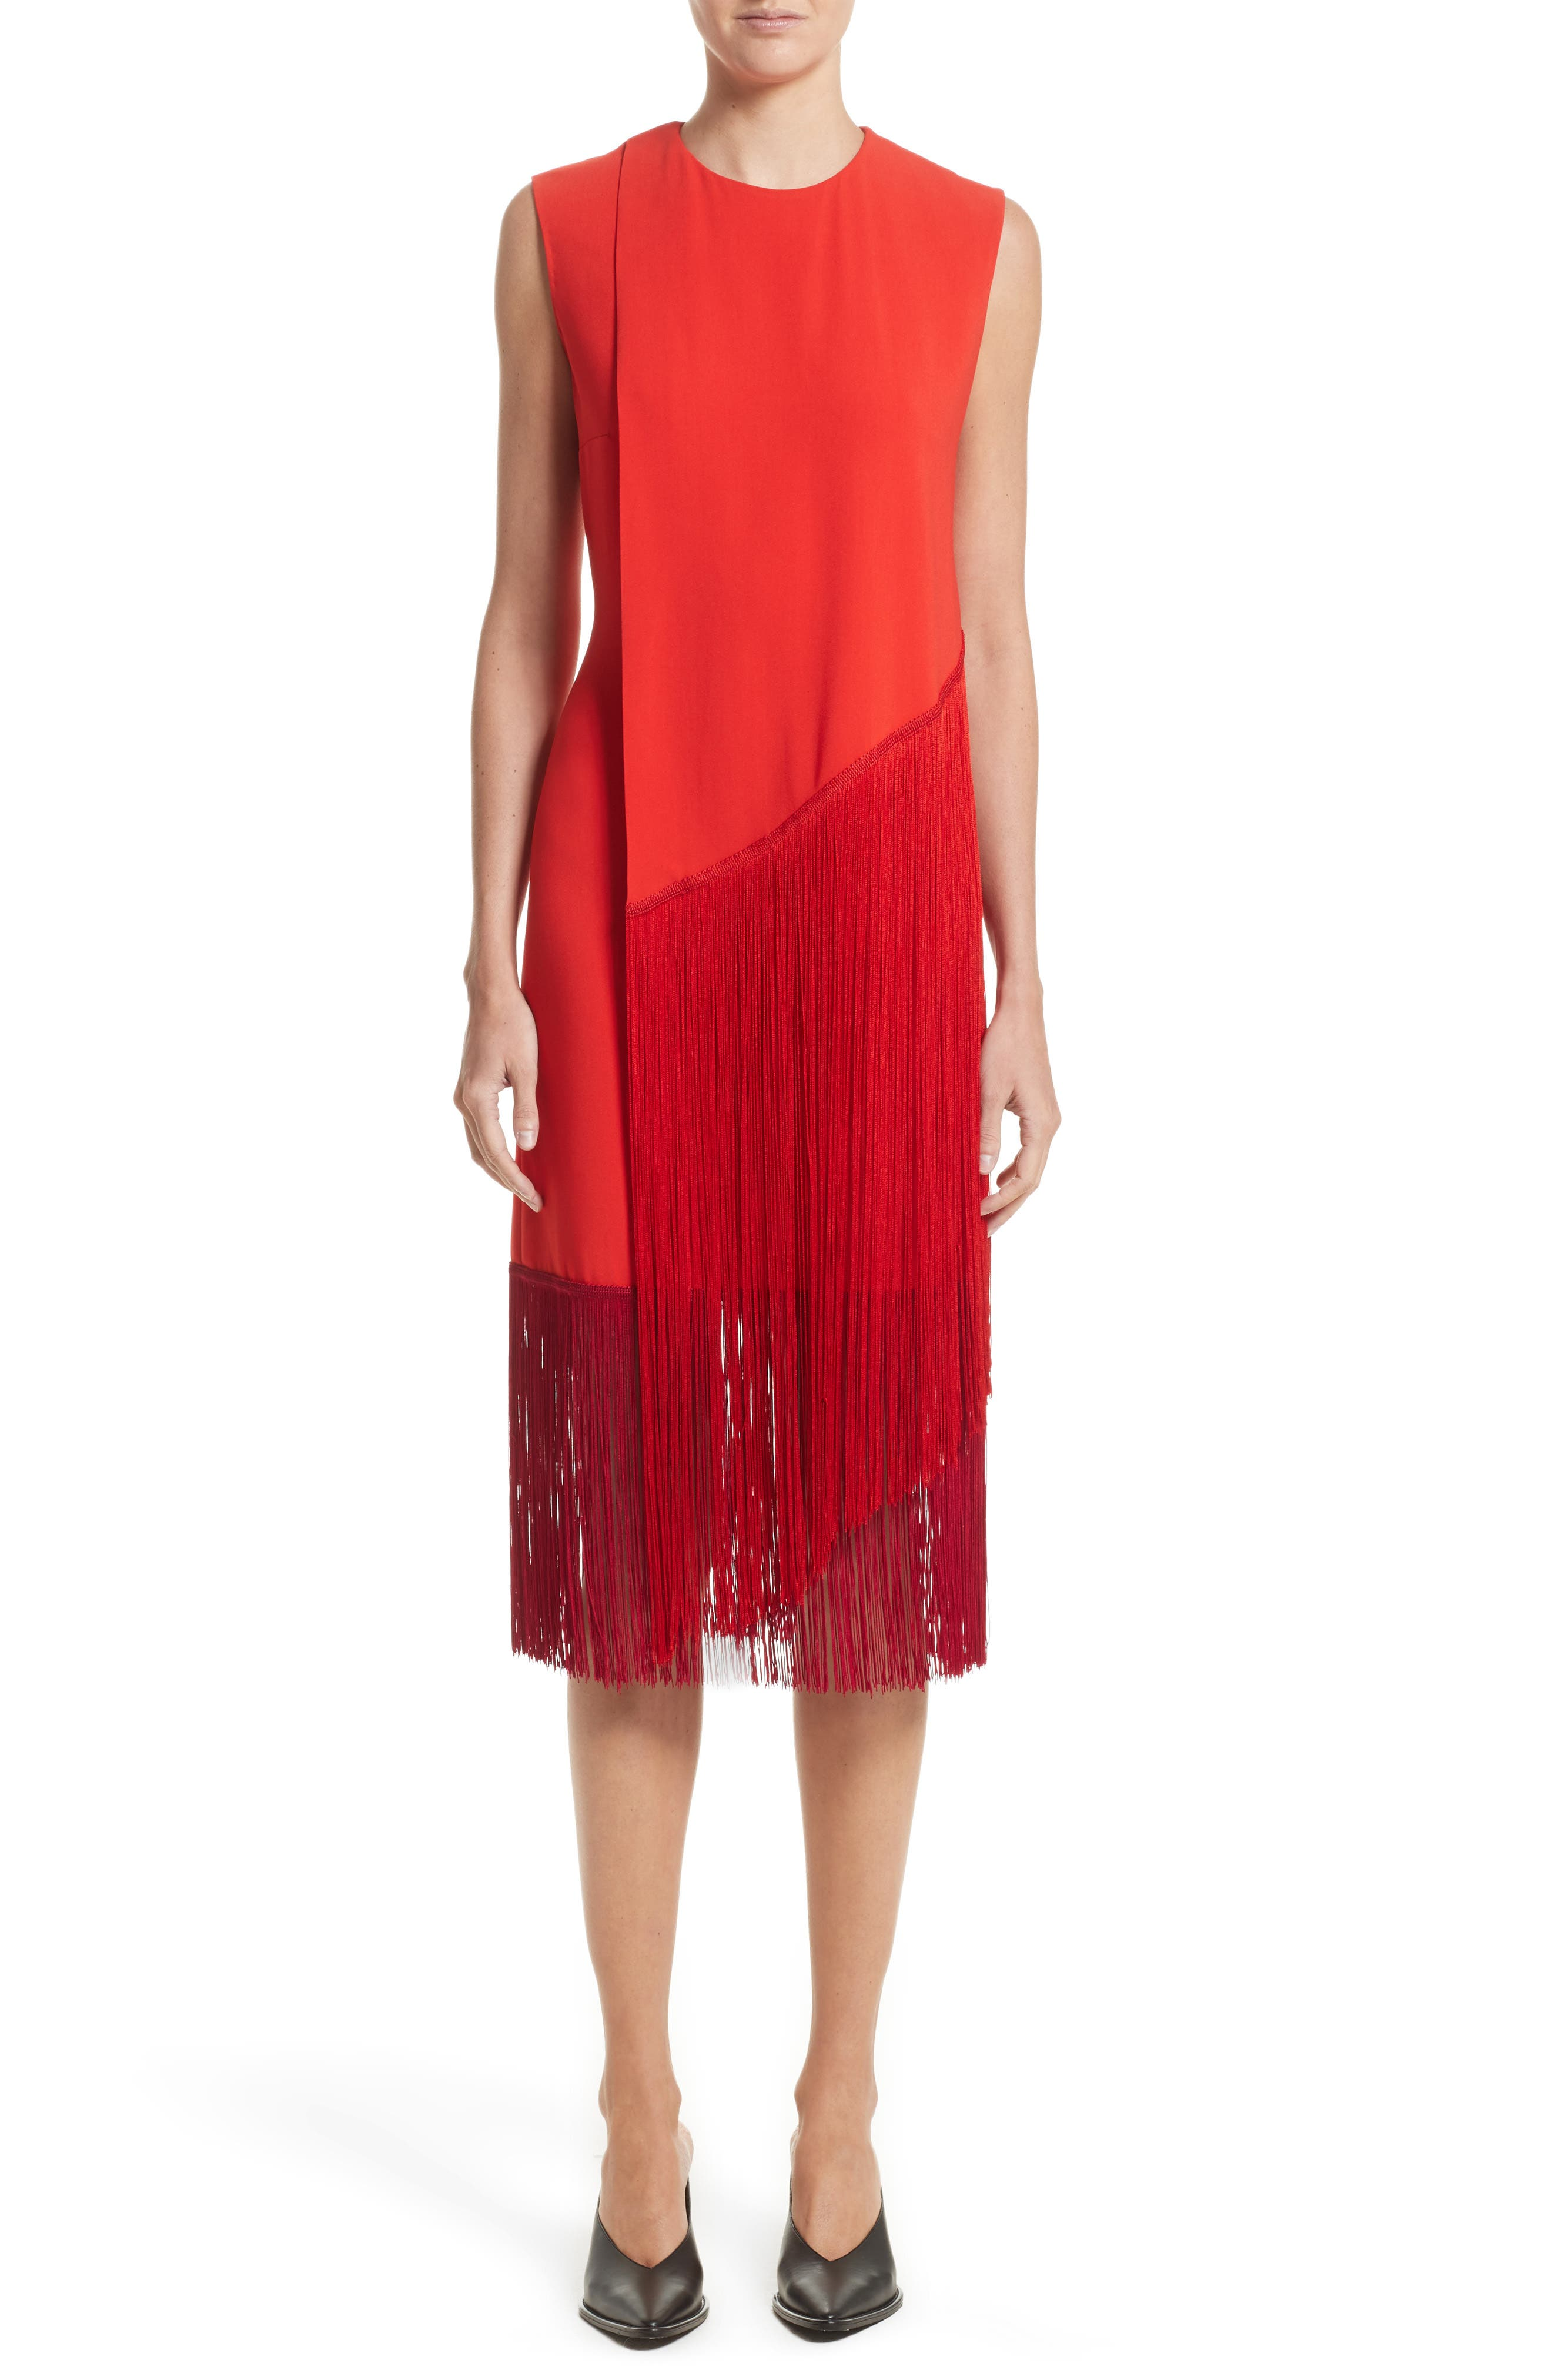 Stella McCartney Fringe Overlay Dress